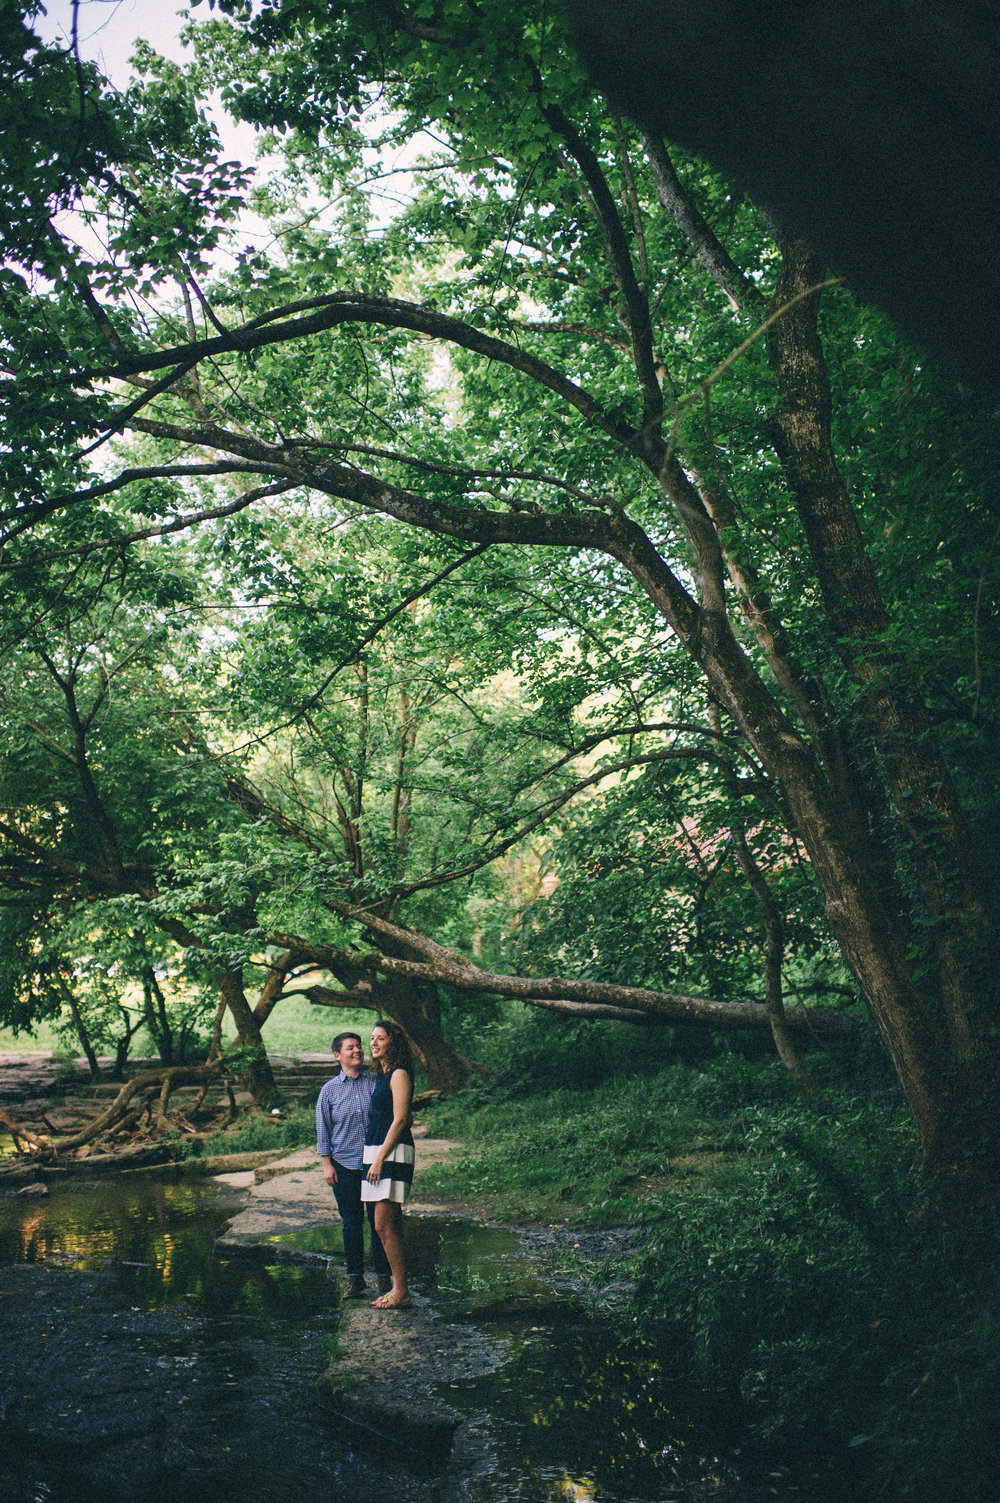 sarah-katherine-davis-photography-engagment-session-wedding-photographer-kentucky-louisville-nashville-lexington-big-rock-cherokee-park.jpg